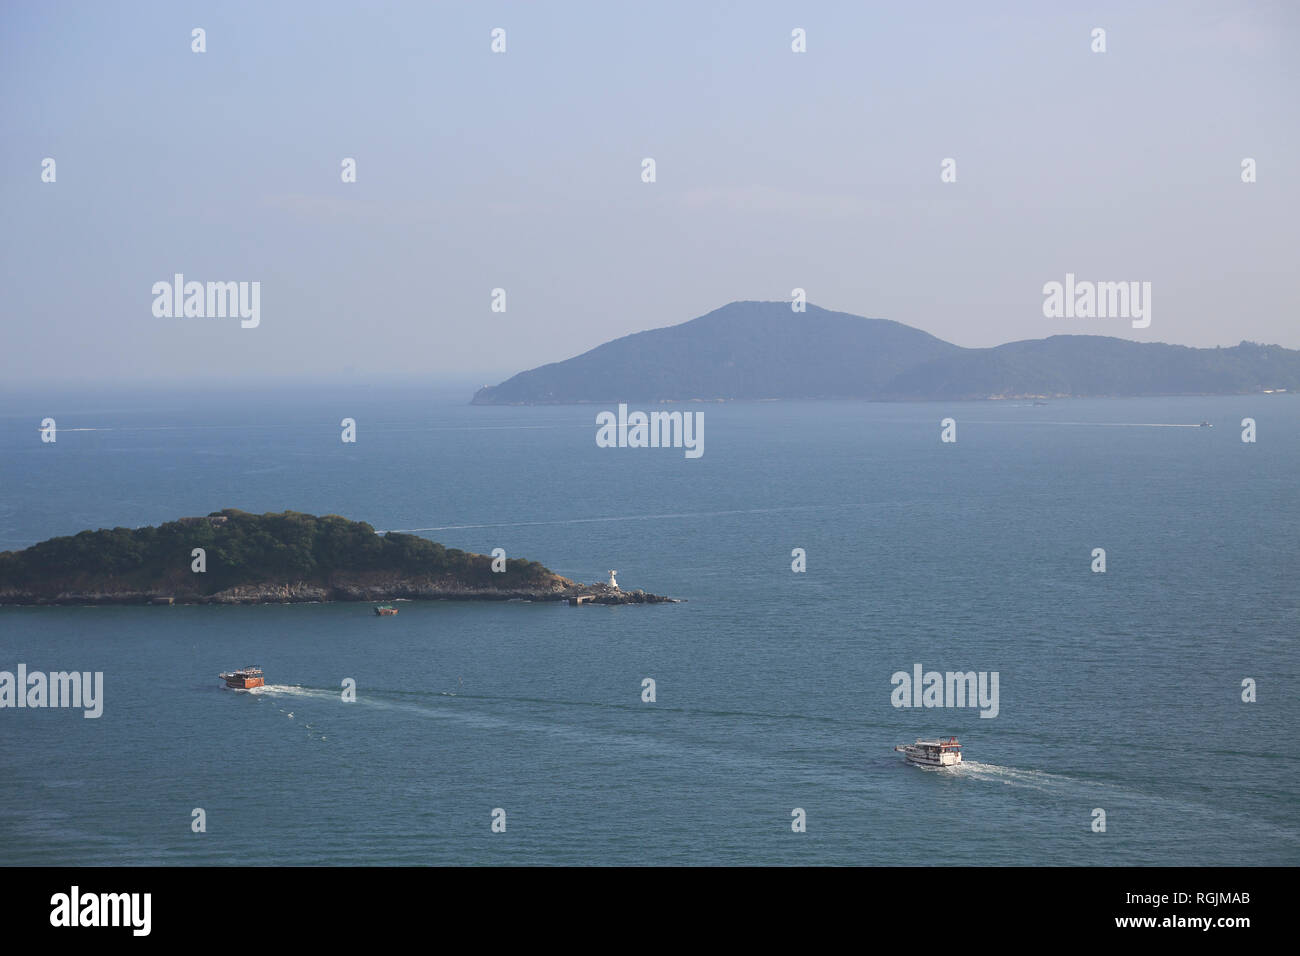 View of Outlying Islands, South China Sea from Pok Fu Lam, Hong Kong Island, Hong Kong, China, Asia - Stock Image